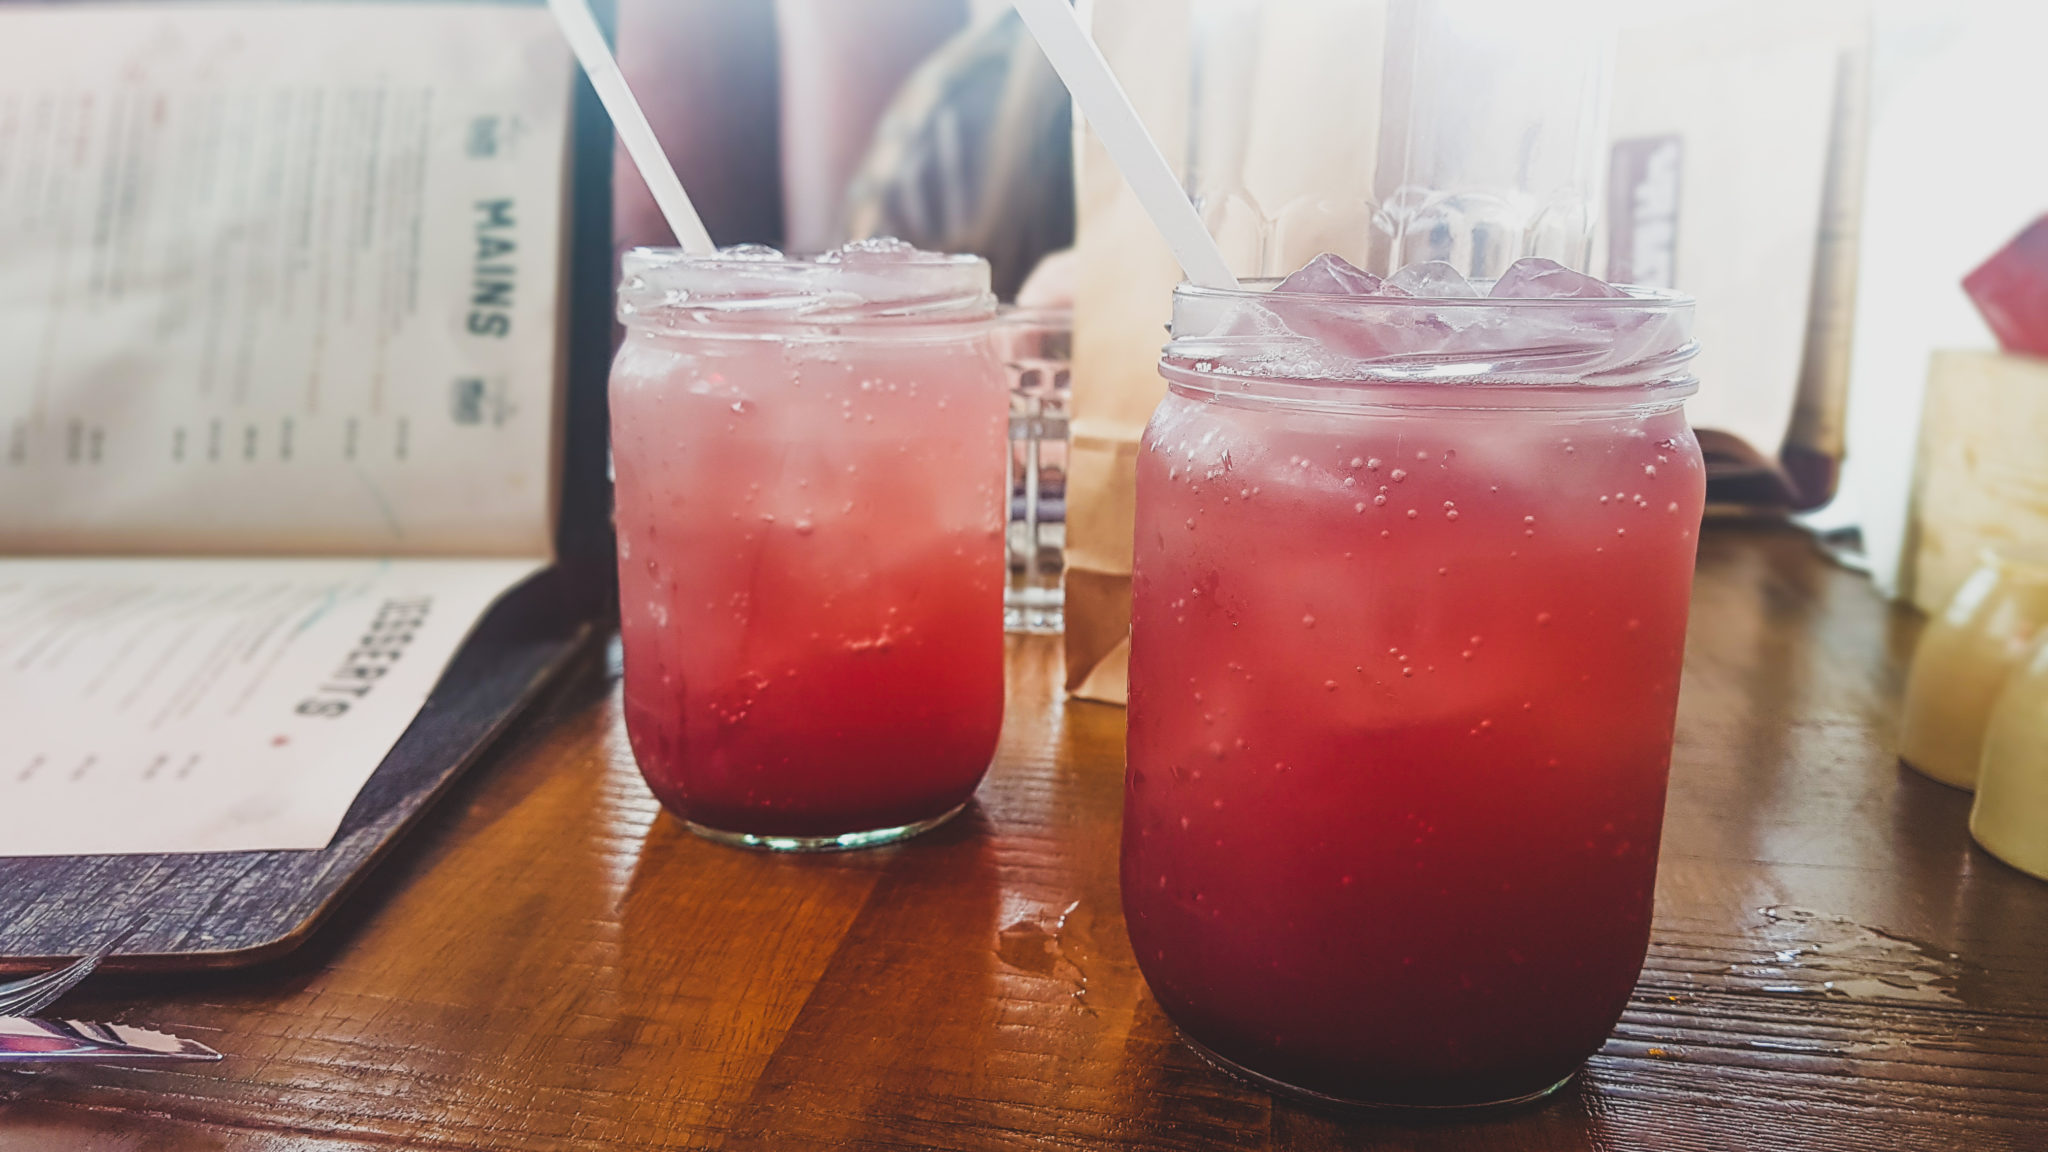 two glasses of cherry cream soda on a table with a menu open in the background